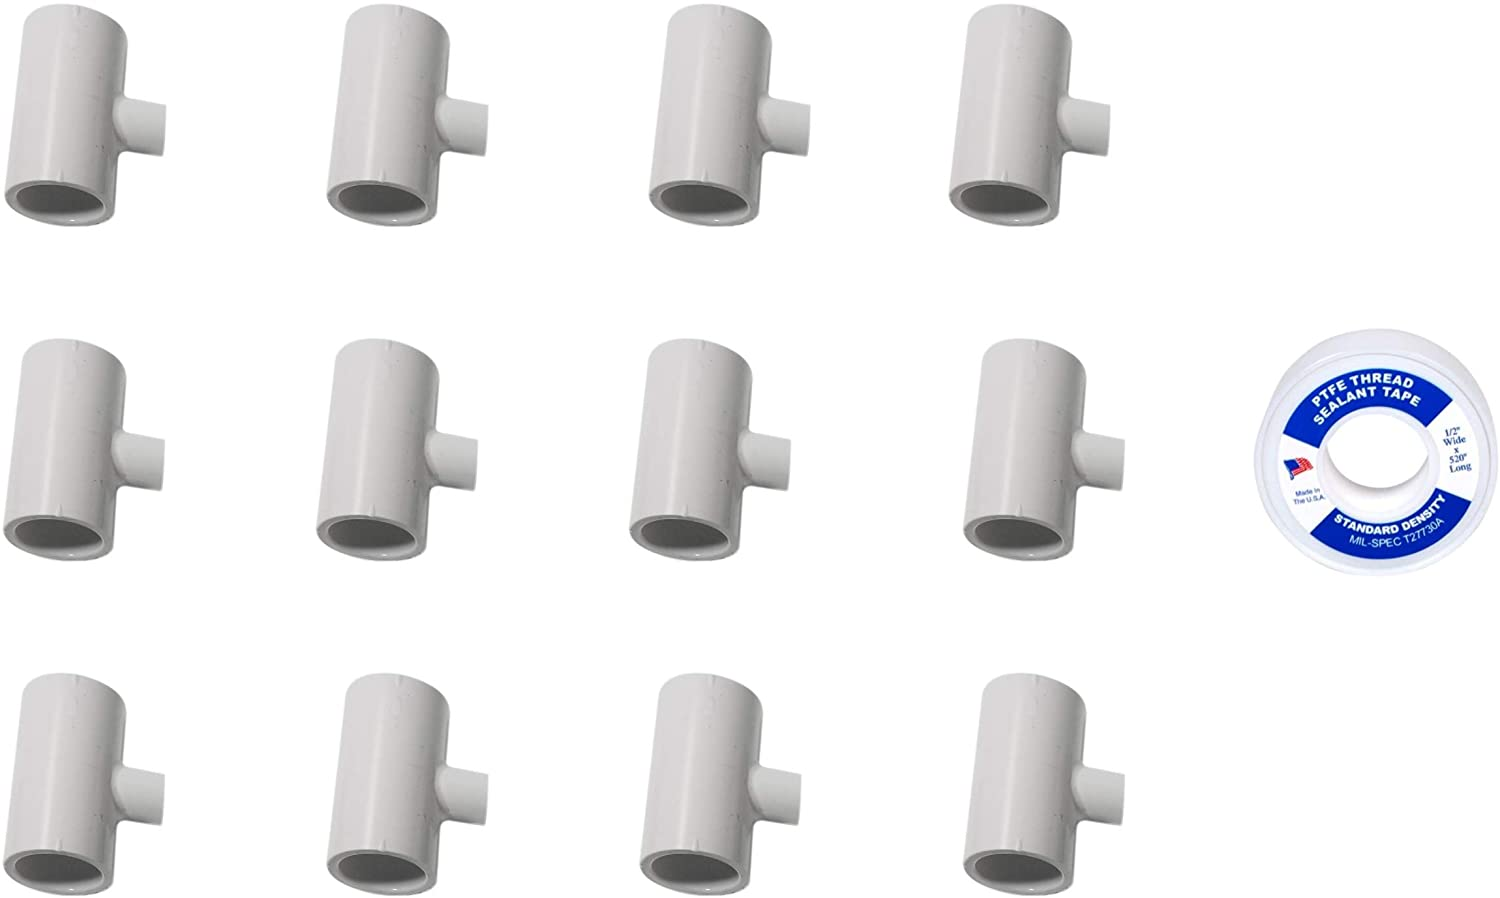 Plant My Tank 10 Pack - PVC Tee Fittings Threaded Poultry Nipples Chicken Waterer - Schedule 40 PVC 1/2 inch Slip X 1/2 inch Slip X 1/8 inch FPT - Made in The USA (12 with PFTE Tape)